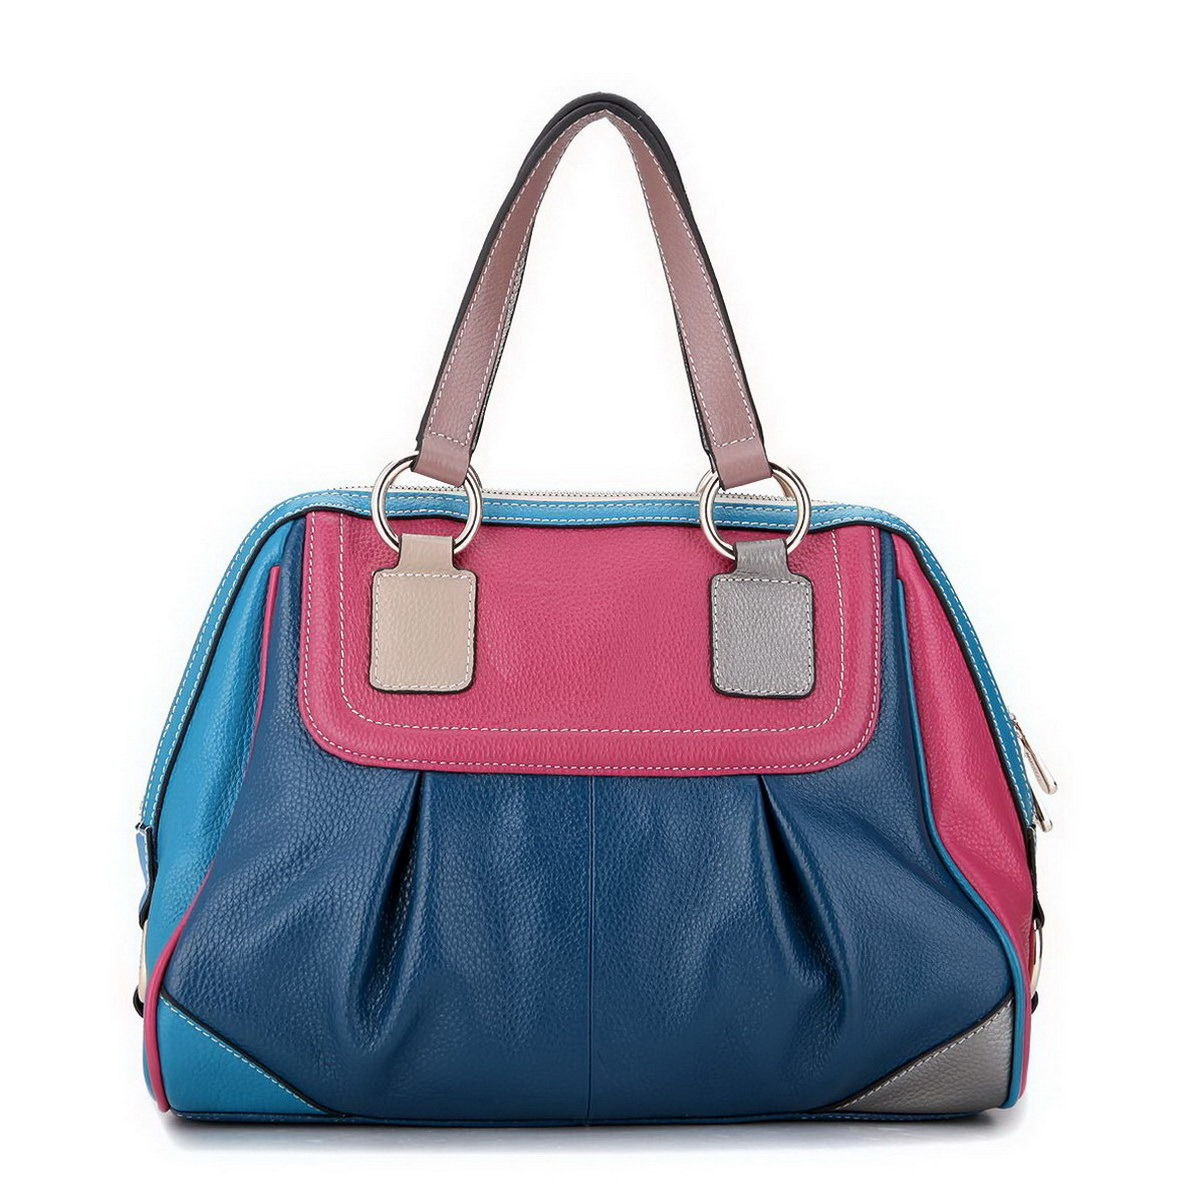 ... : Home  Women's Bags  Tote Bags  Designer leather handbag Blue